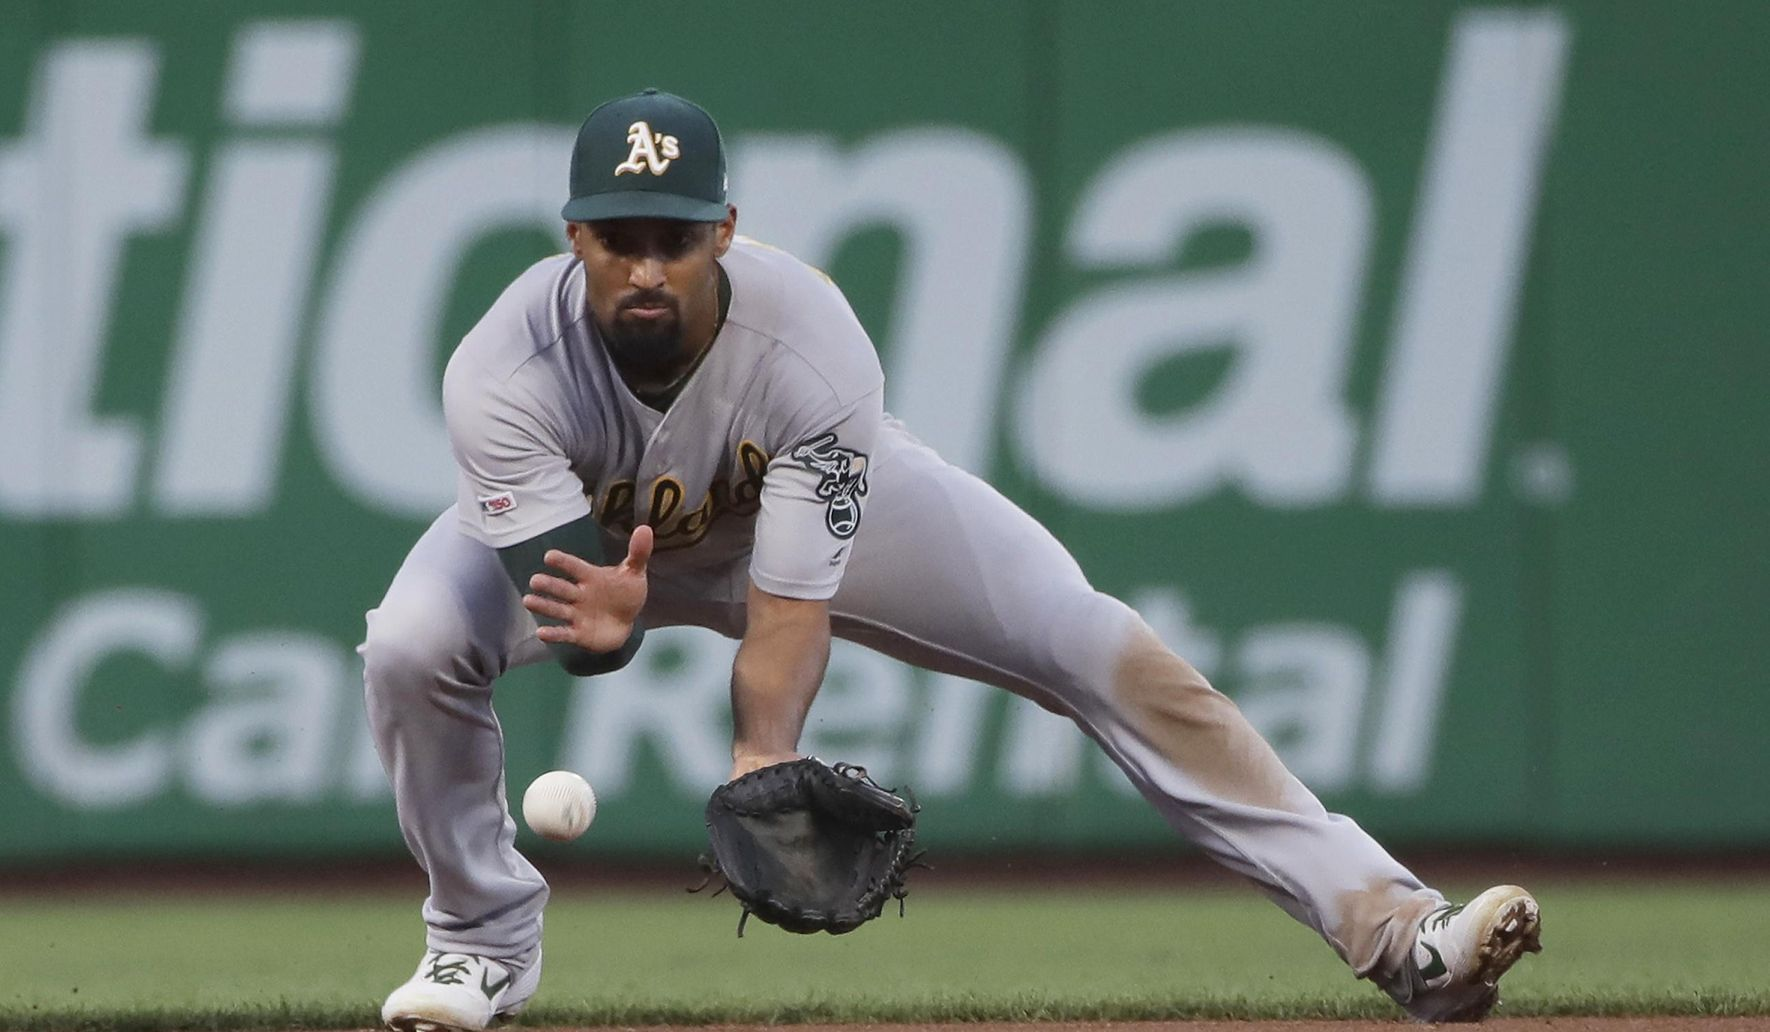 Athletics_spring_preview_baseball_89122_c0-139-2592-1650_s1770x1032